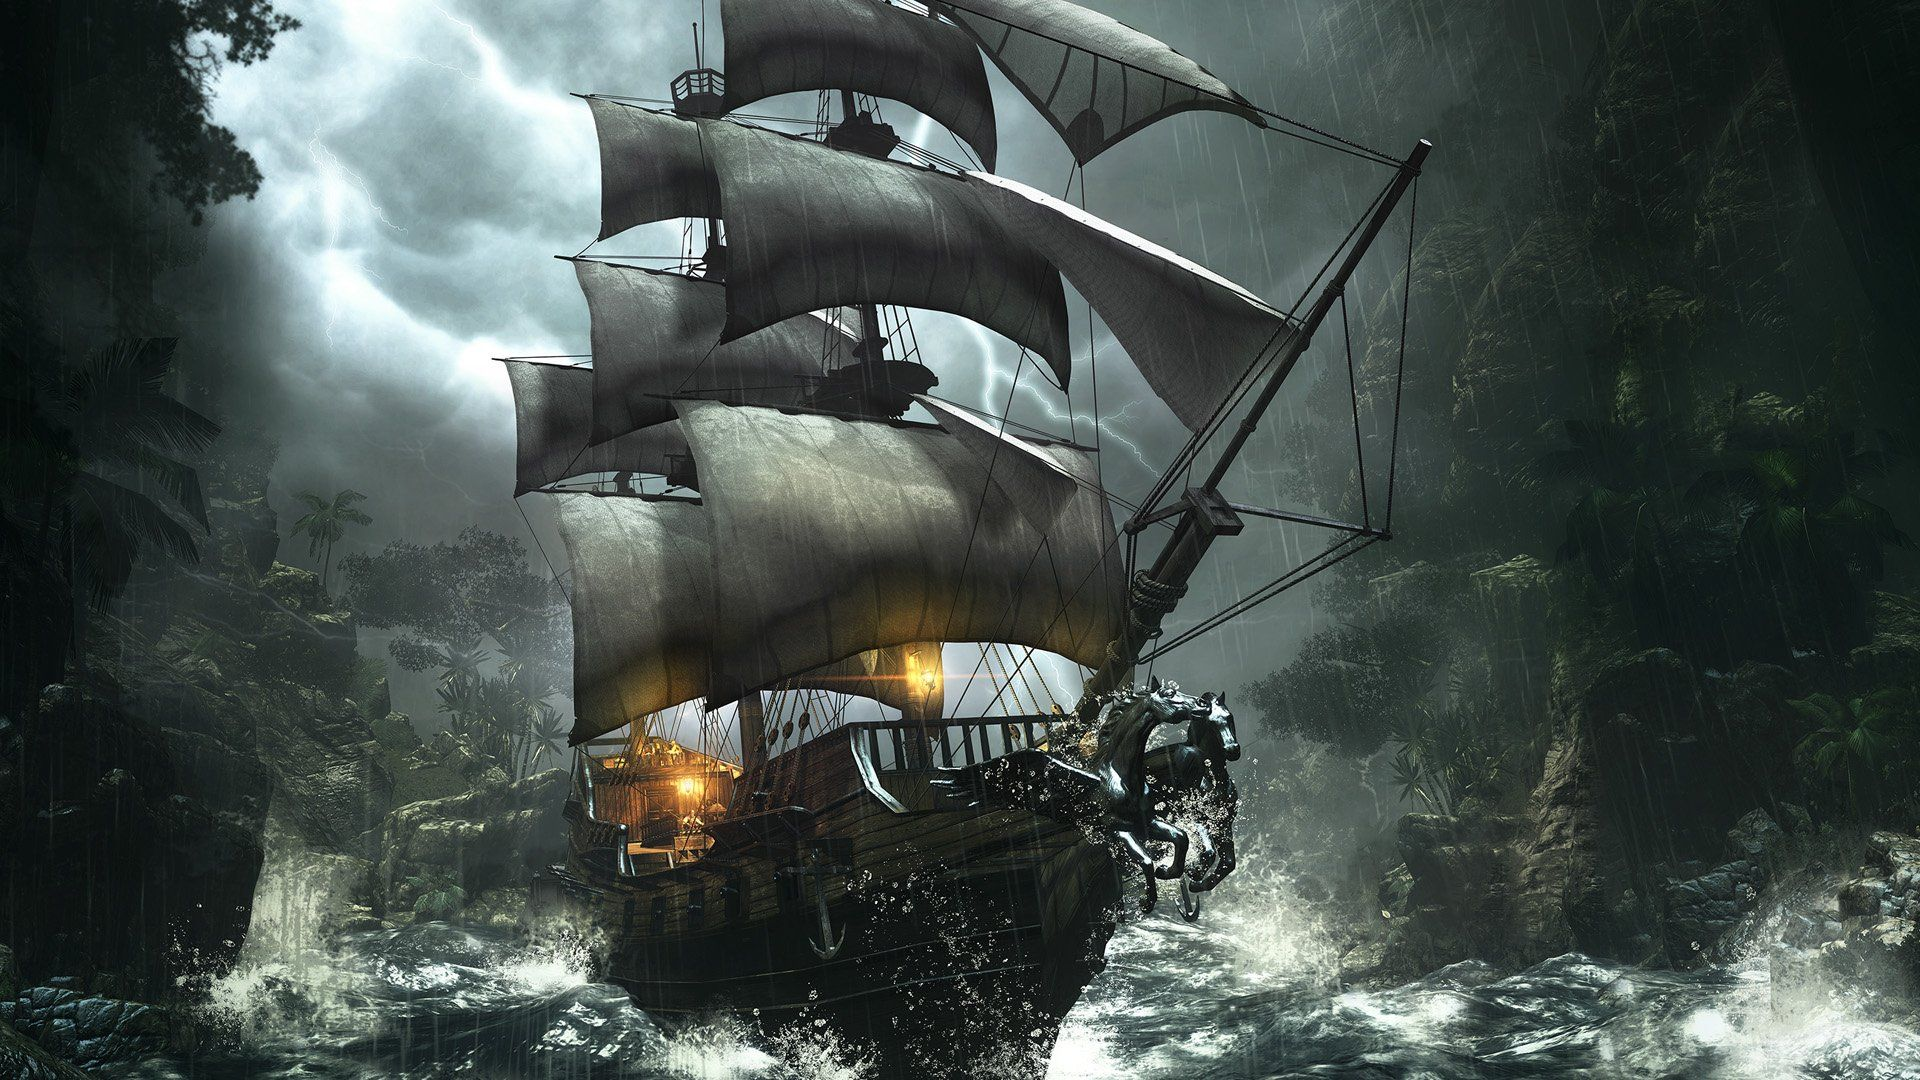 Pirate Ship Wallpapers Top Free Pirate Ship Backgrounds Wallpaperaccess